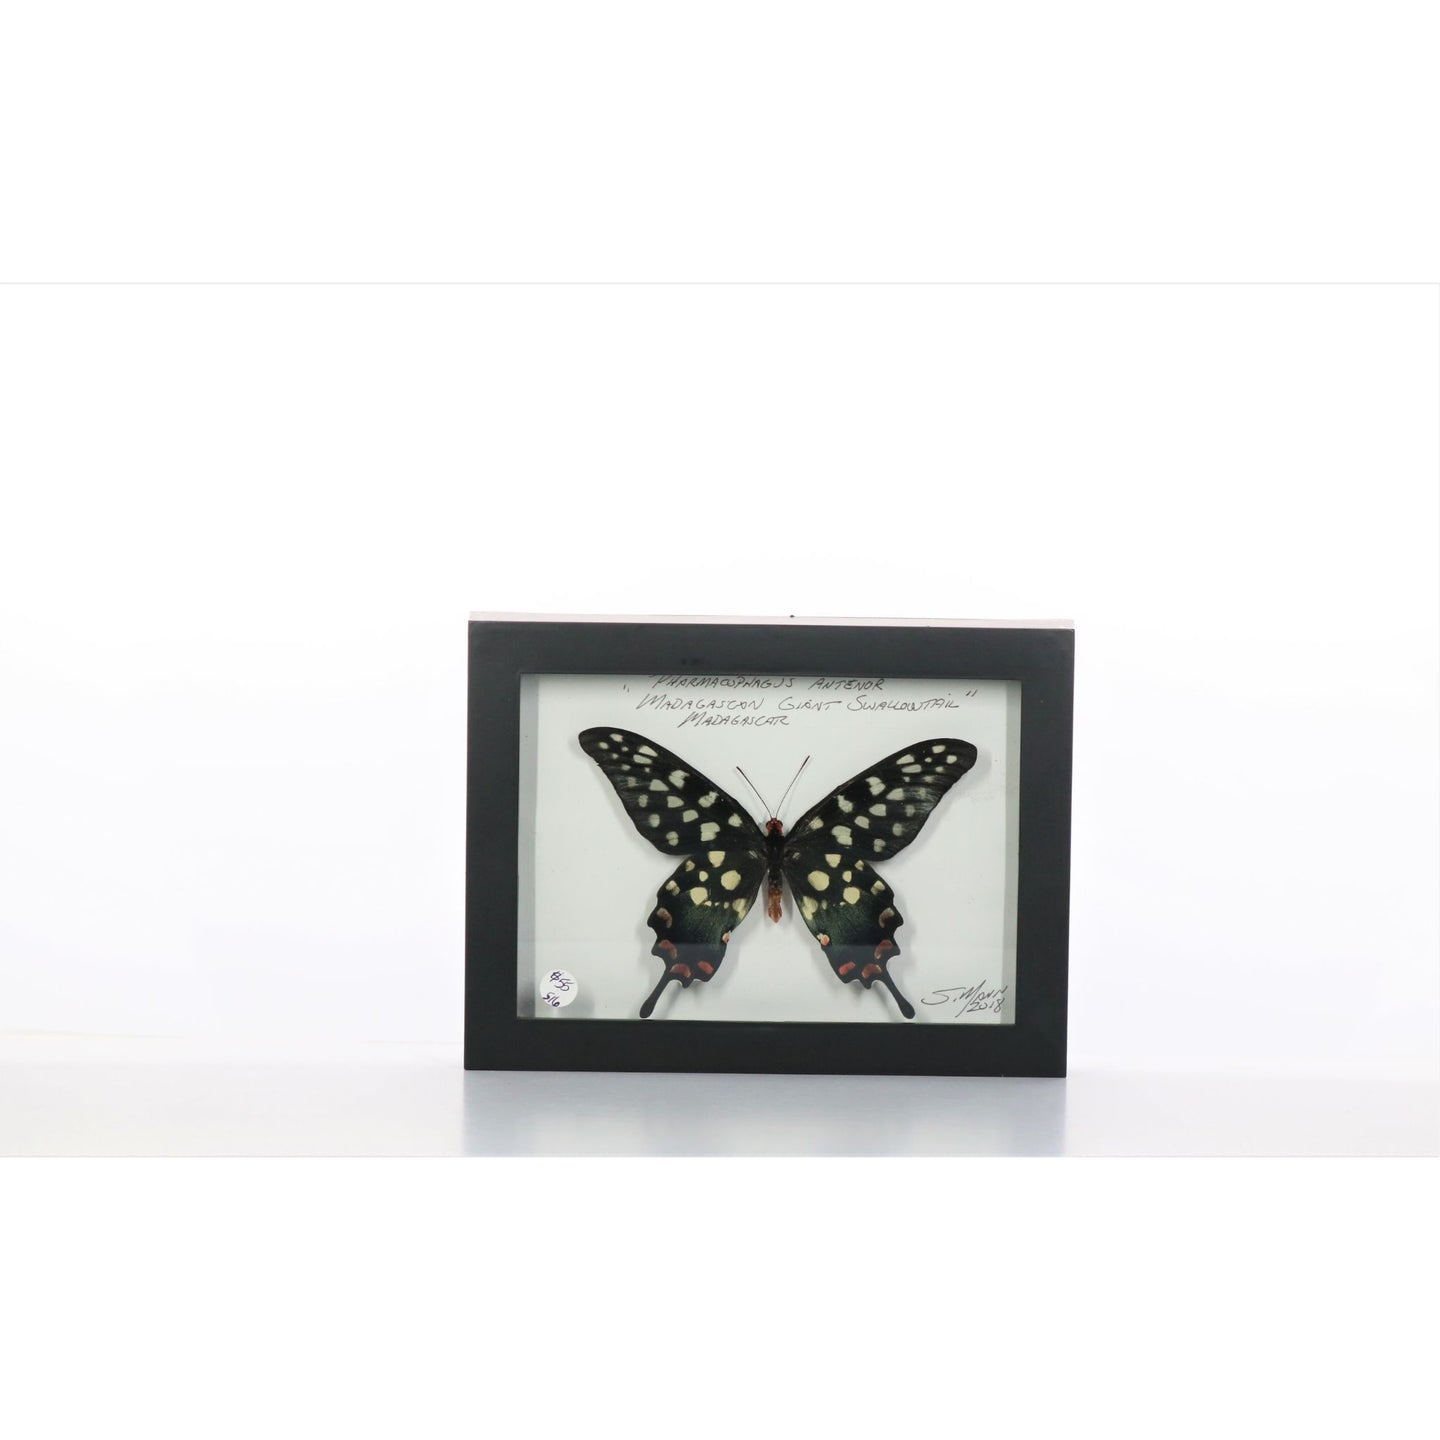 Madigascar Swallowtail 5x7 Black #516 Framed Art - Insecta Etcetera